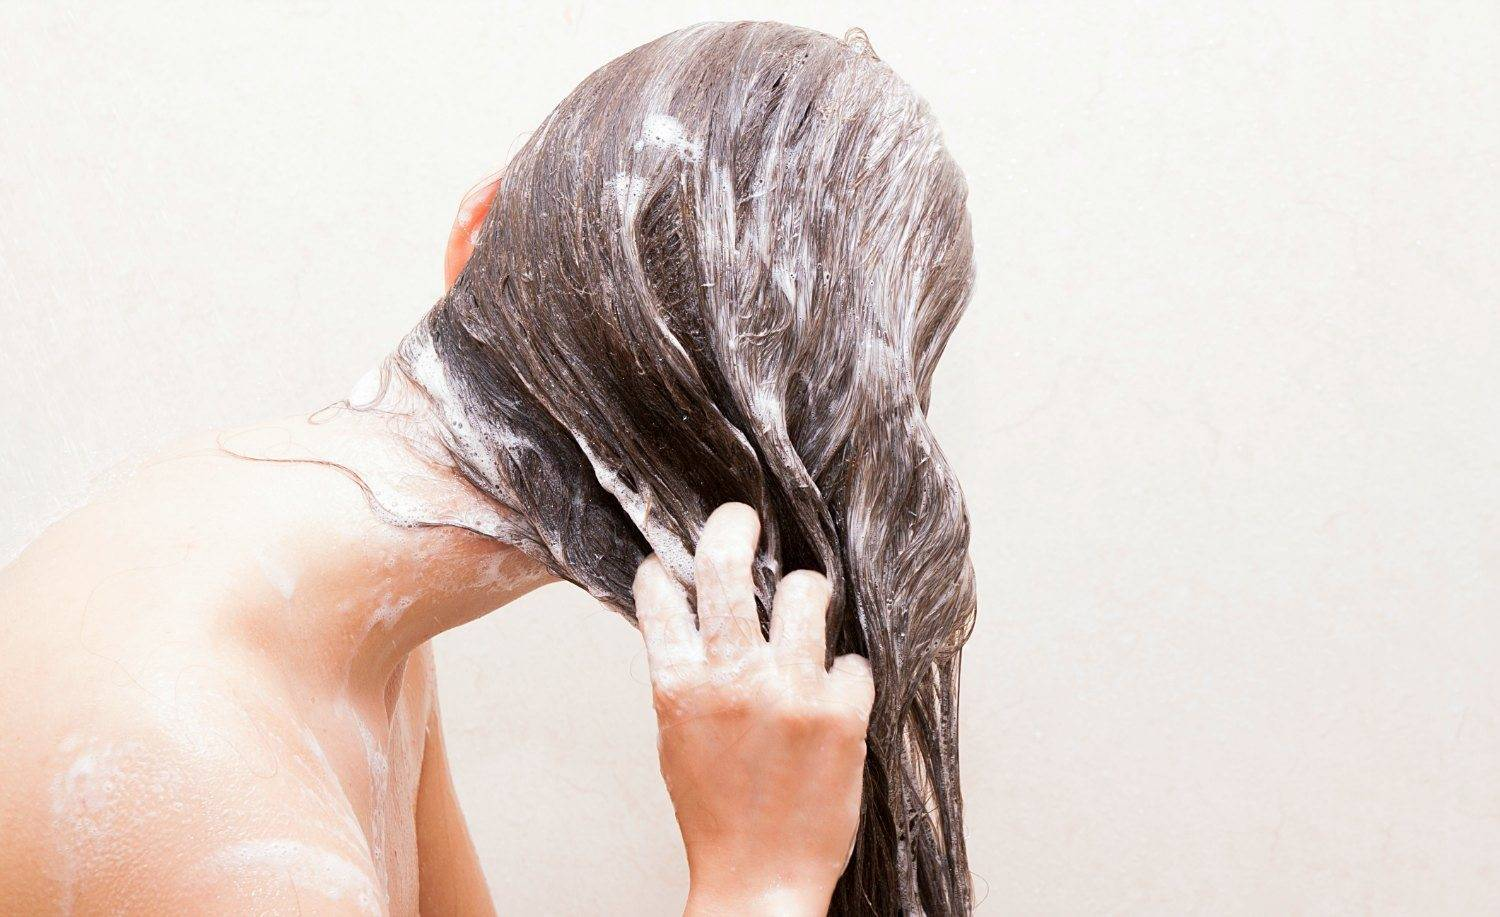 Washing hair extensions